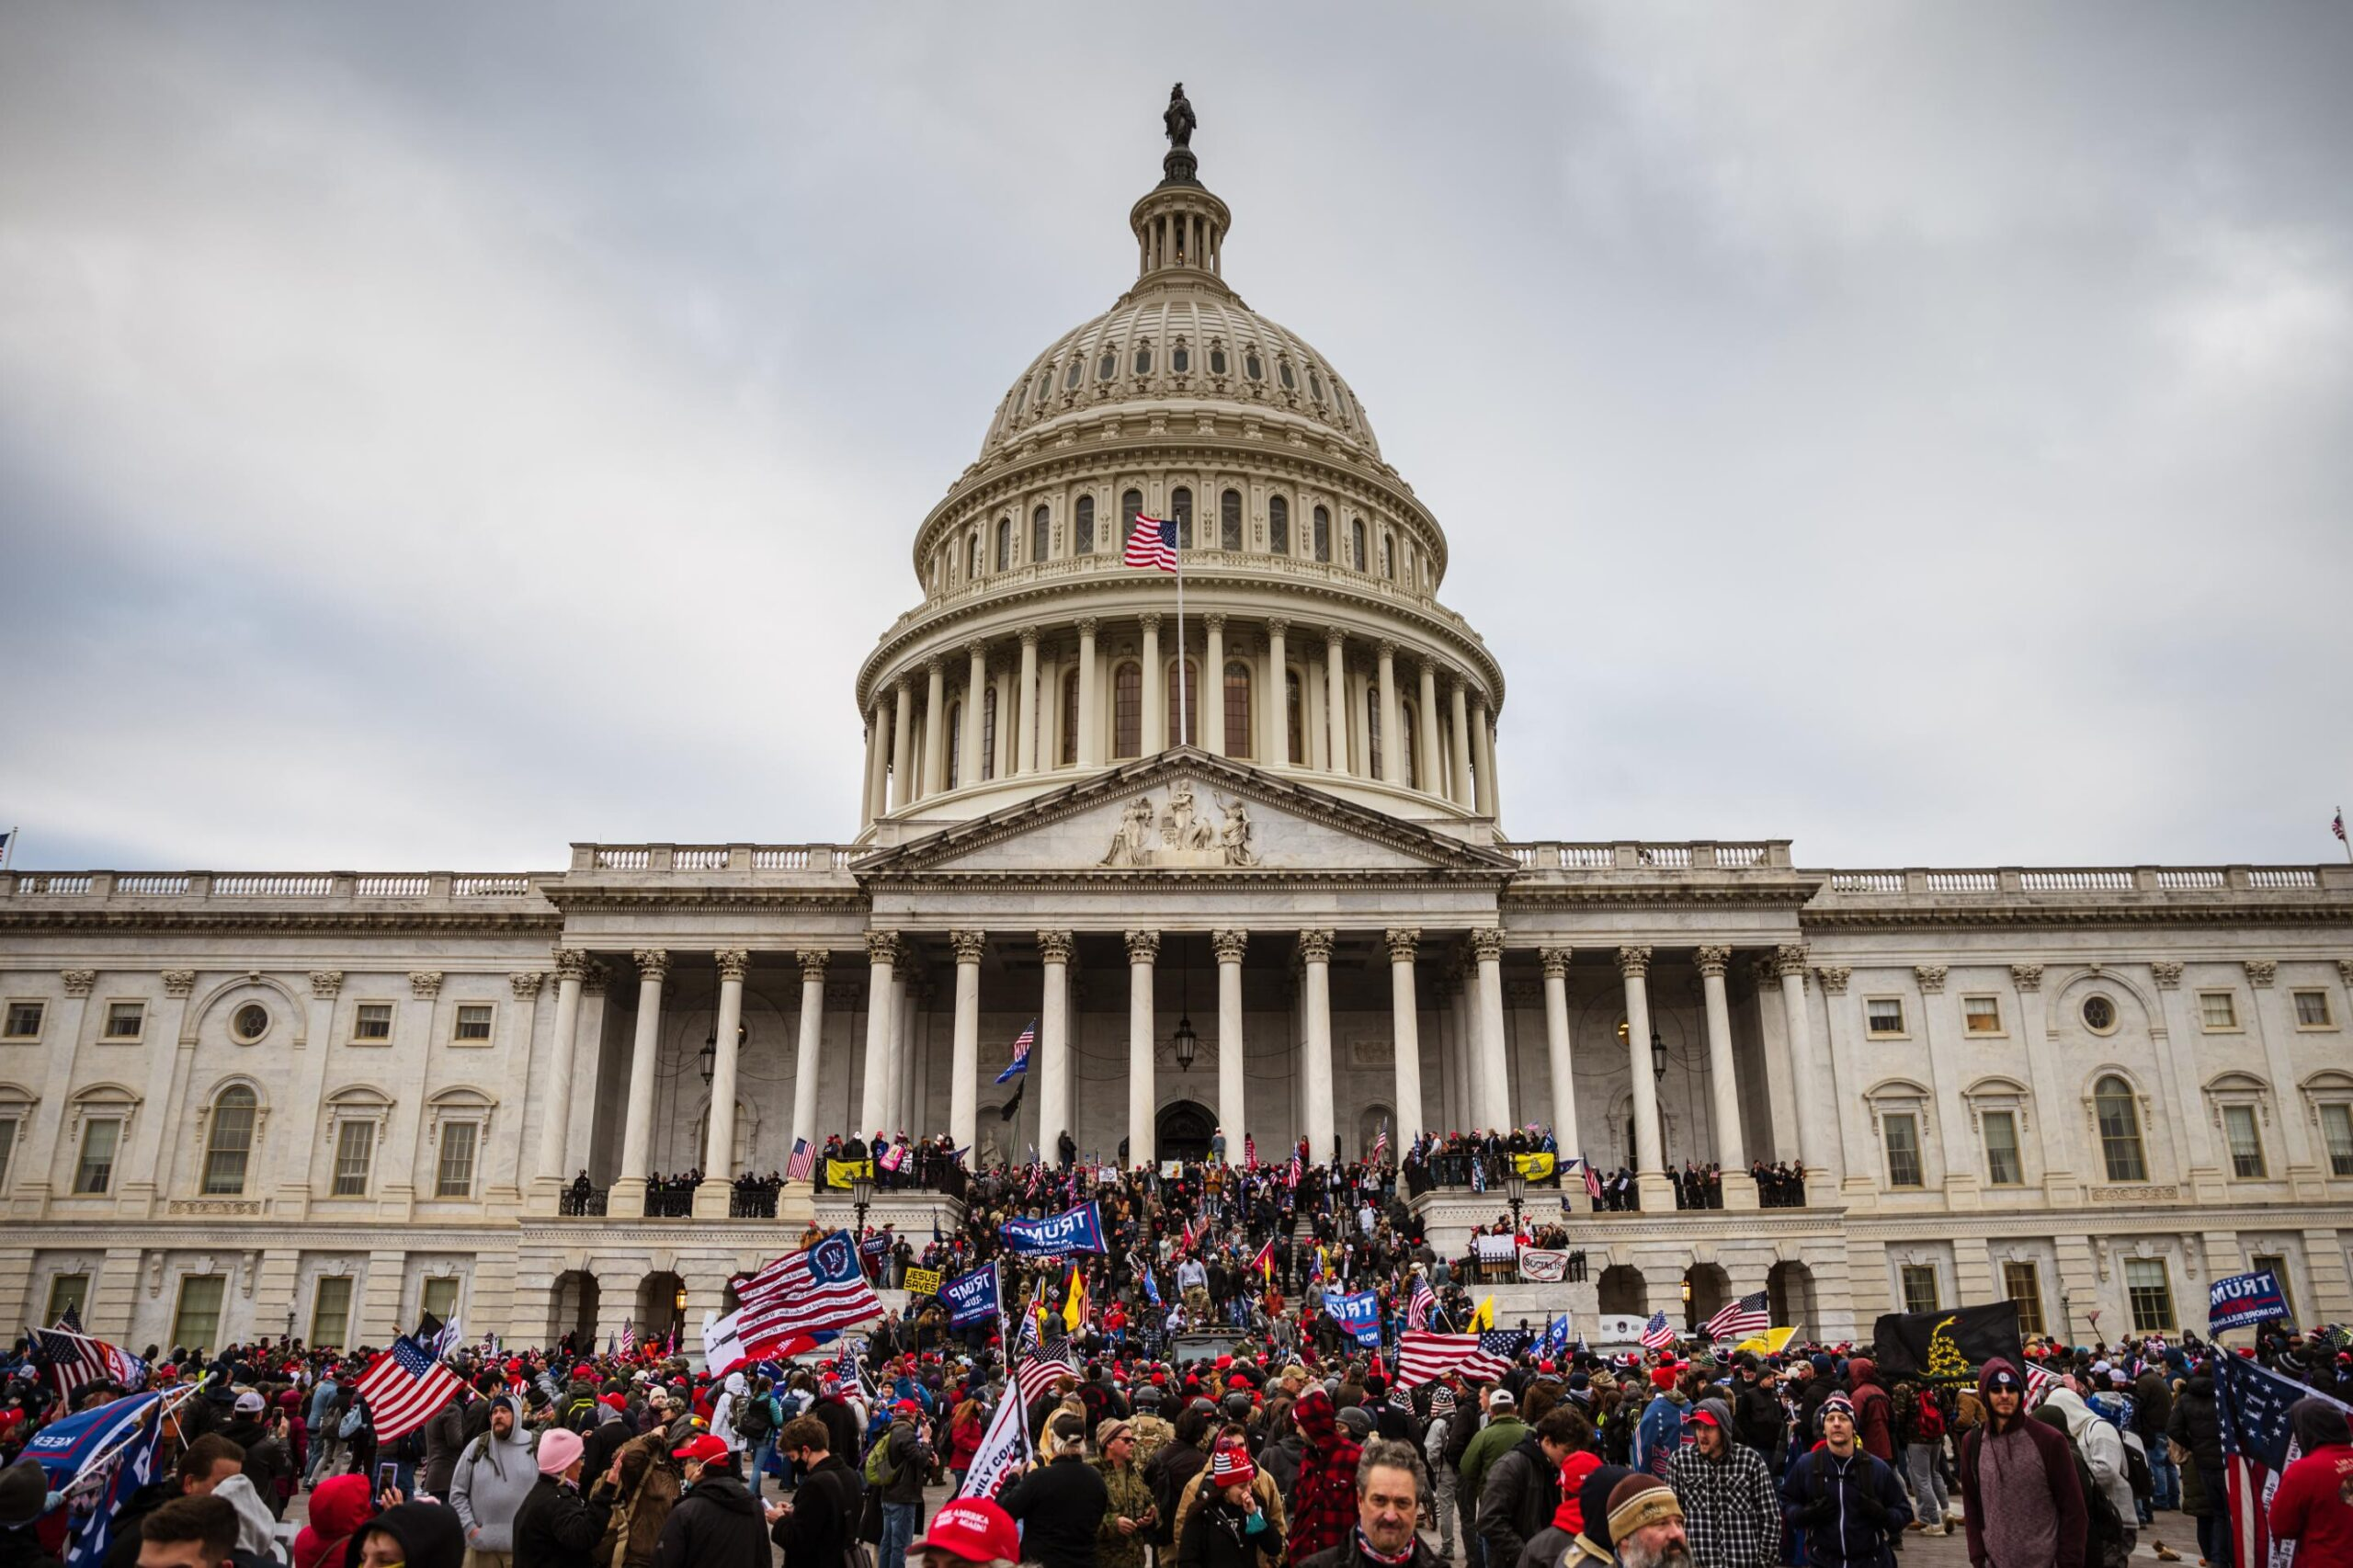 <i>Jon Cherry/Getty Images North America/Getty Images</i><br/>The select committee investigating the January 6 riot at the US Capitol